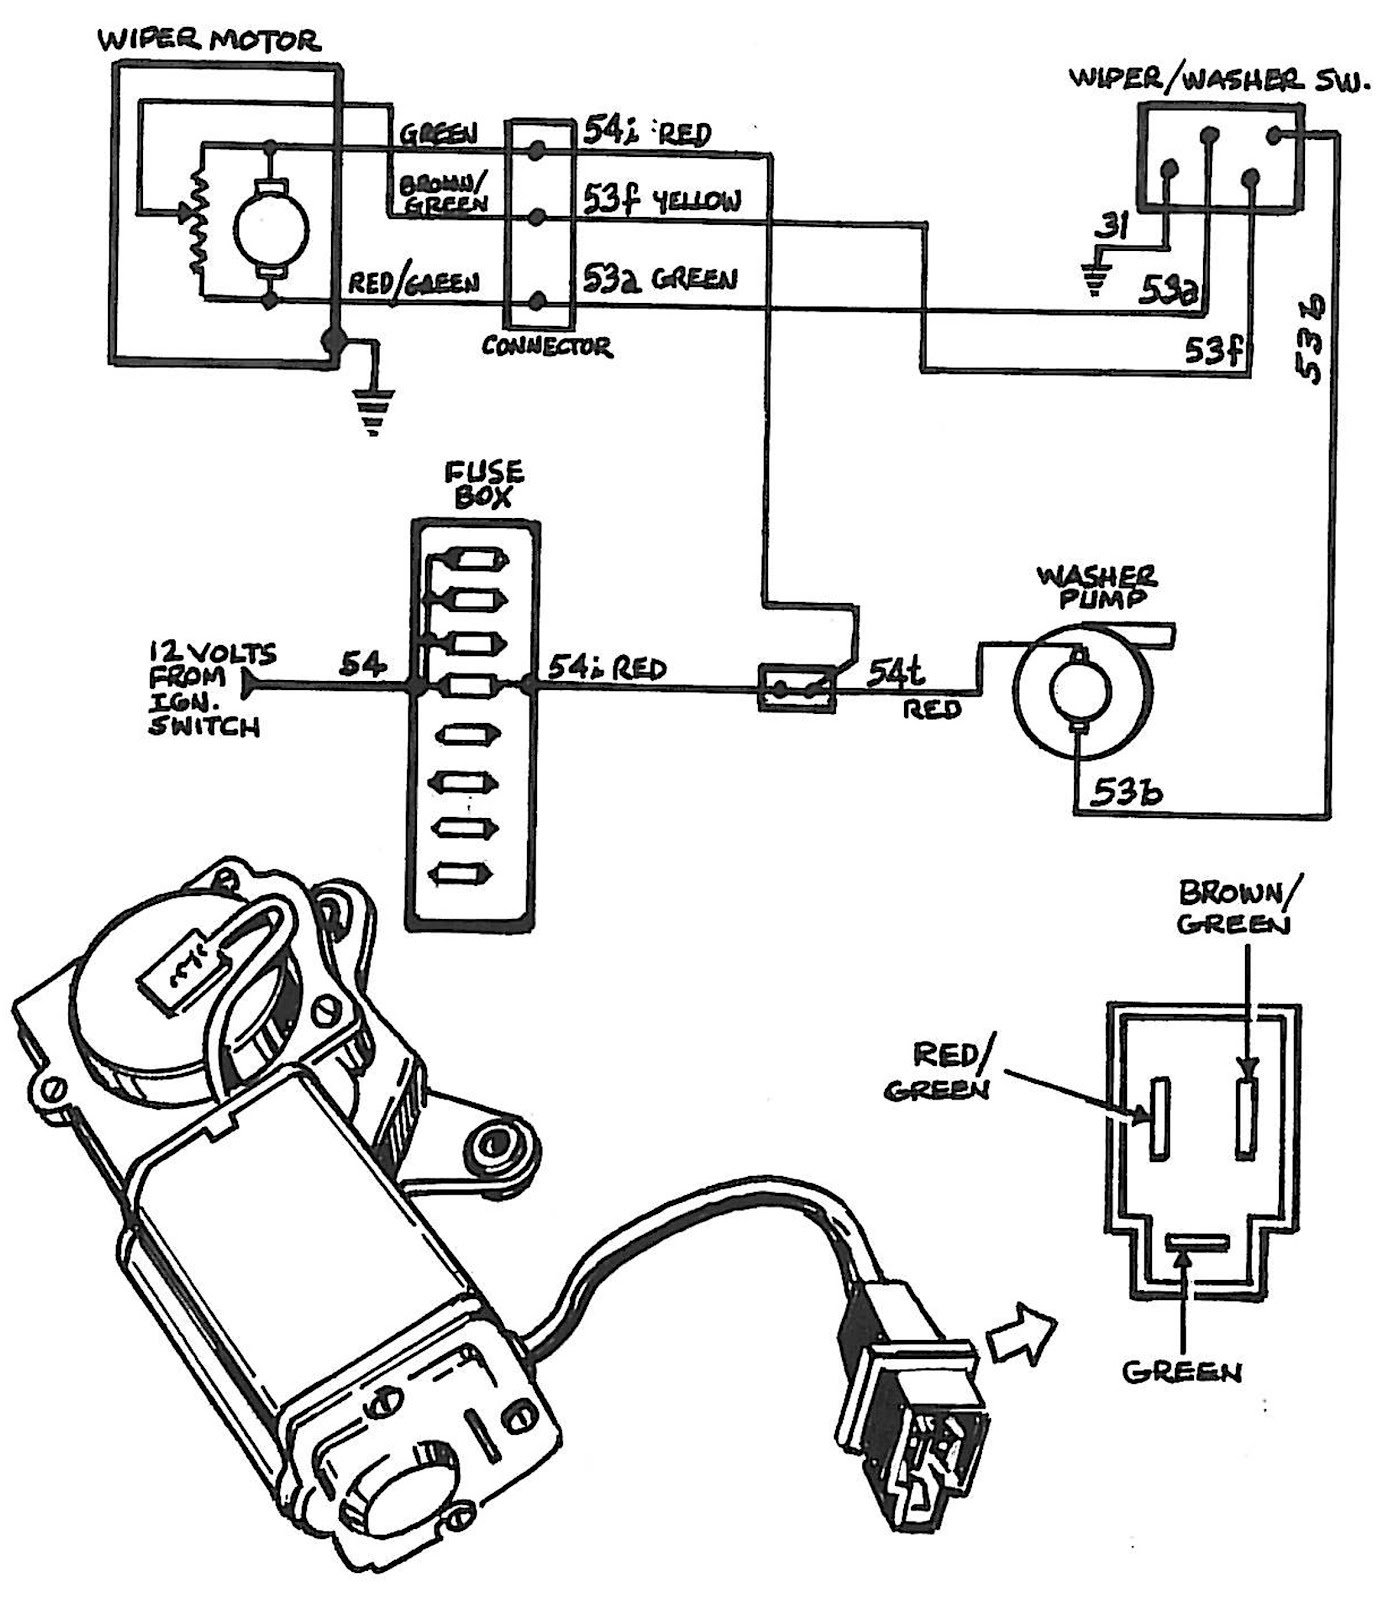 General Navigation Wiring Diagram Images Saab Chevy Windshield Wiper Motor Cgttpww 3773bipolar Series